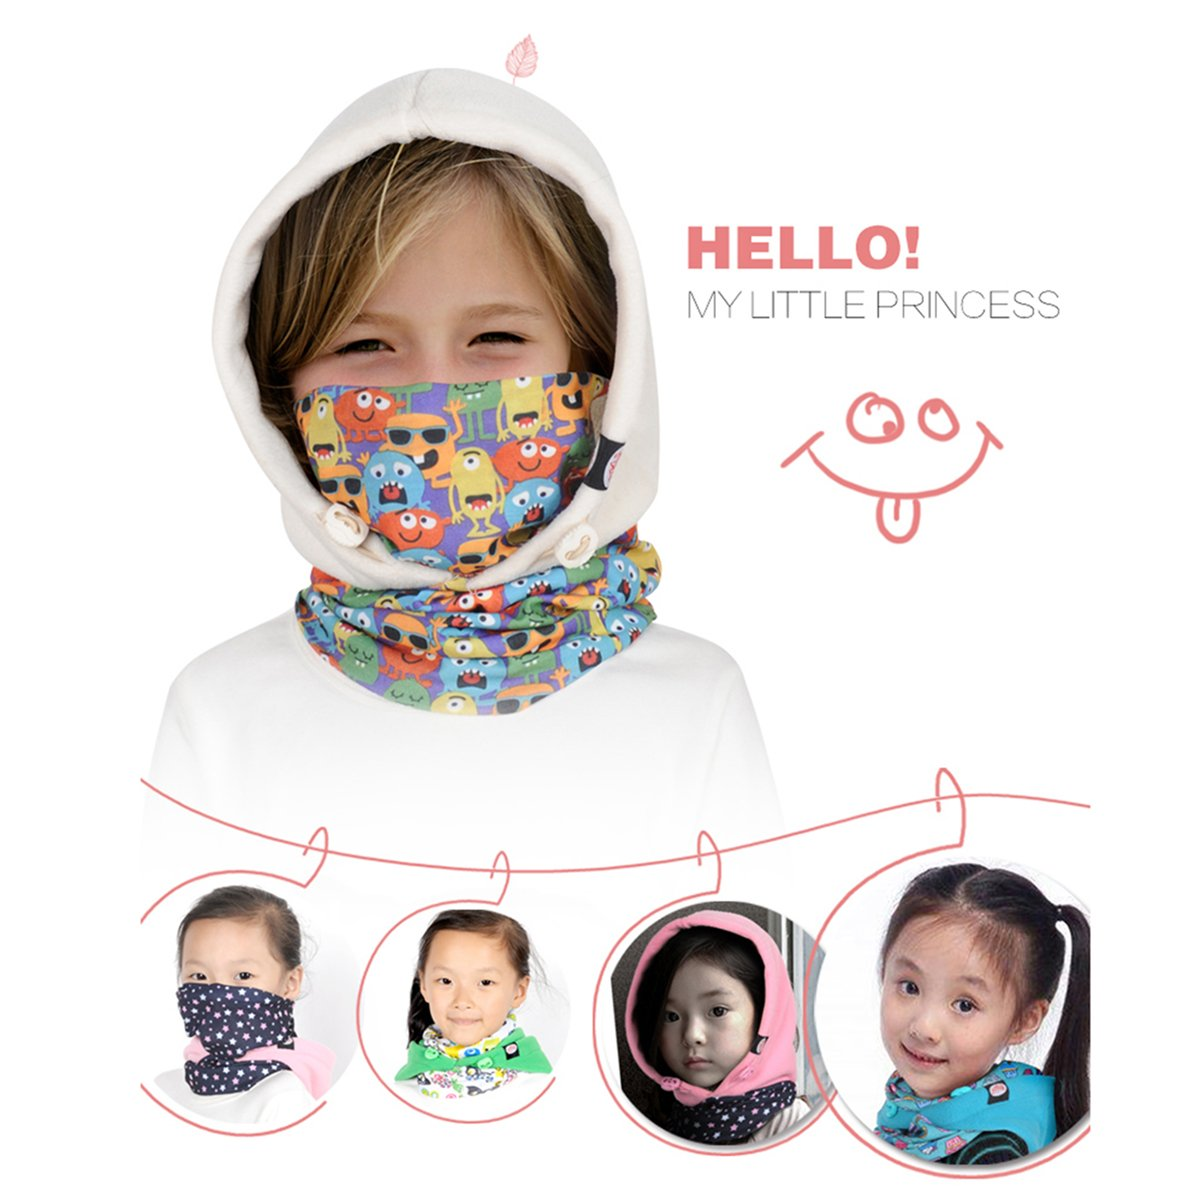 Unique Amazon.com: TRIWONDER Balaclava Hat for Kids Face Mask Thermal  RJ46